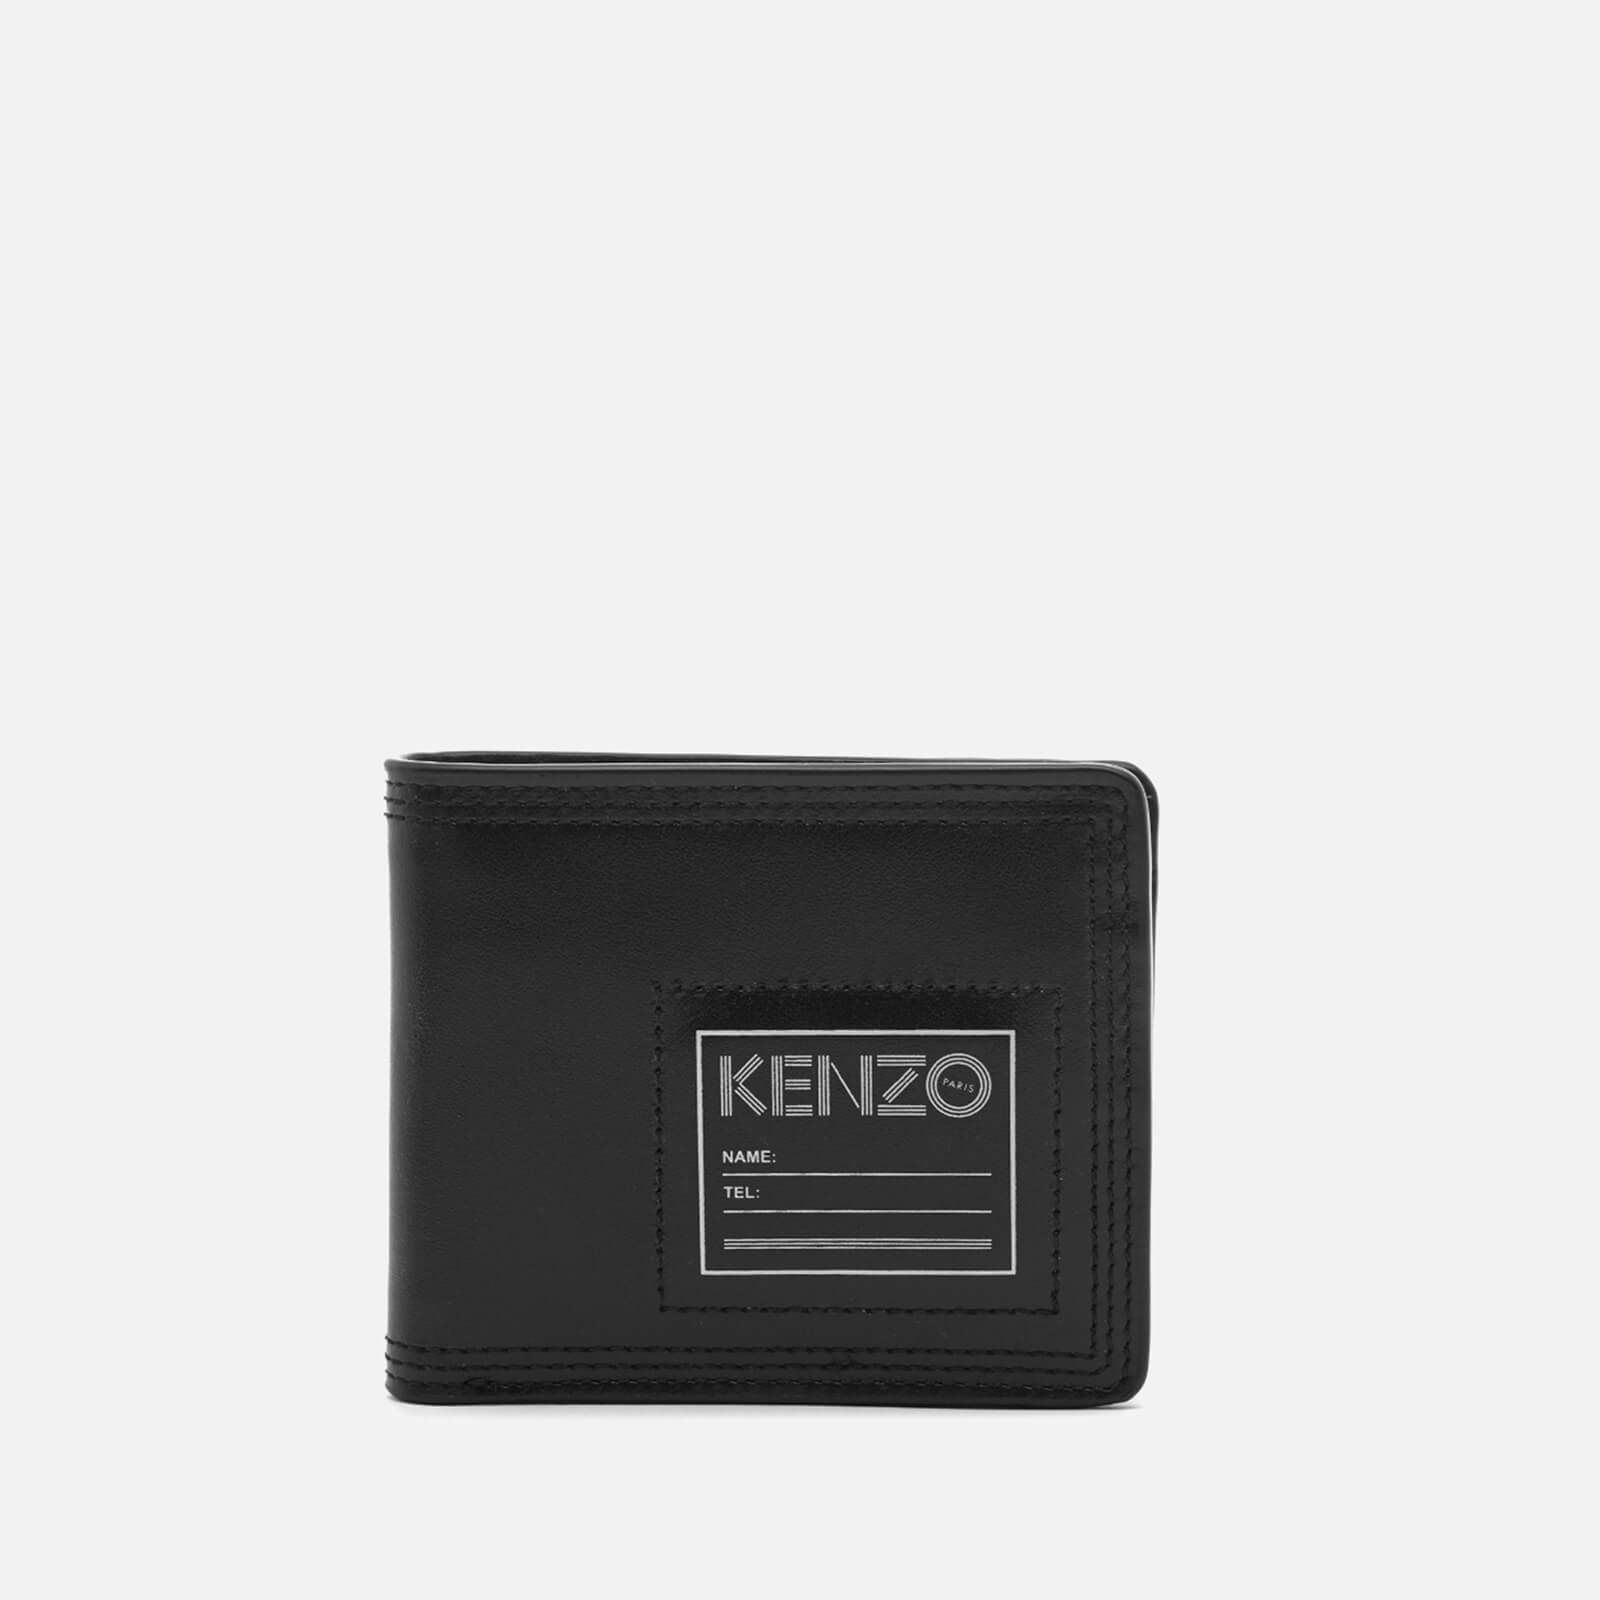 f1fda8550417 KENZO Men's Leather Card Wallet - Black - Free UK Delivery over £50